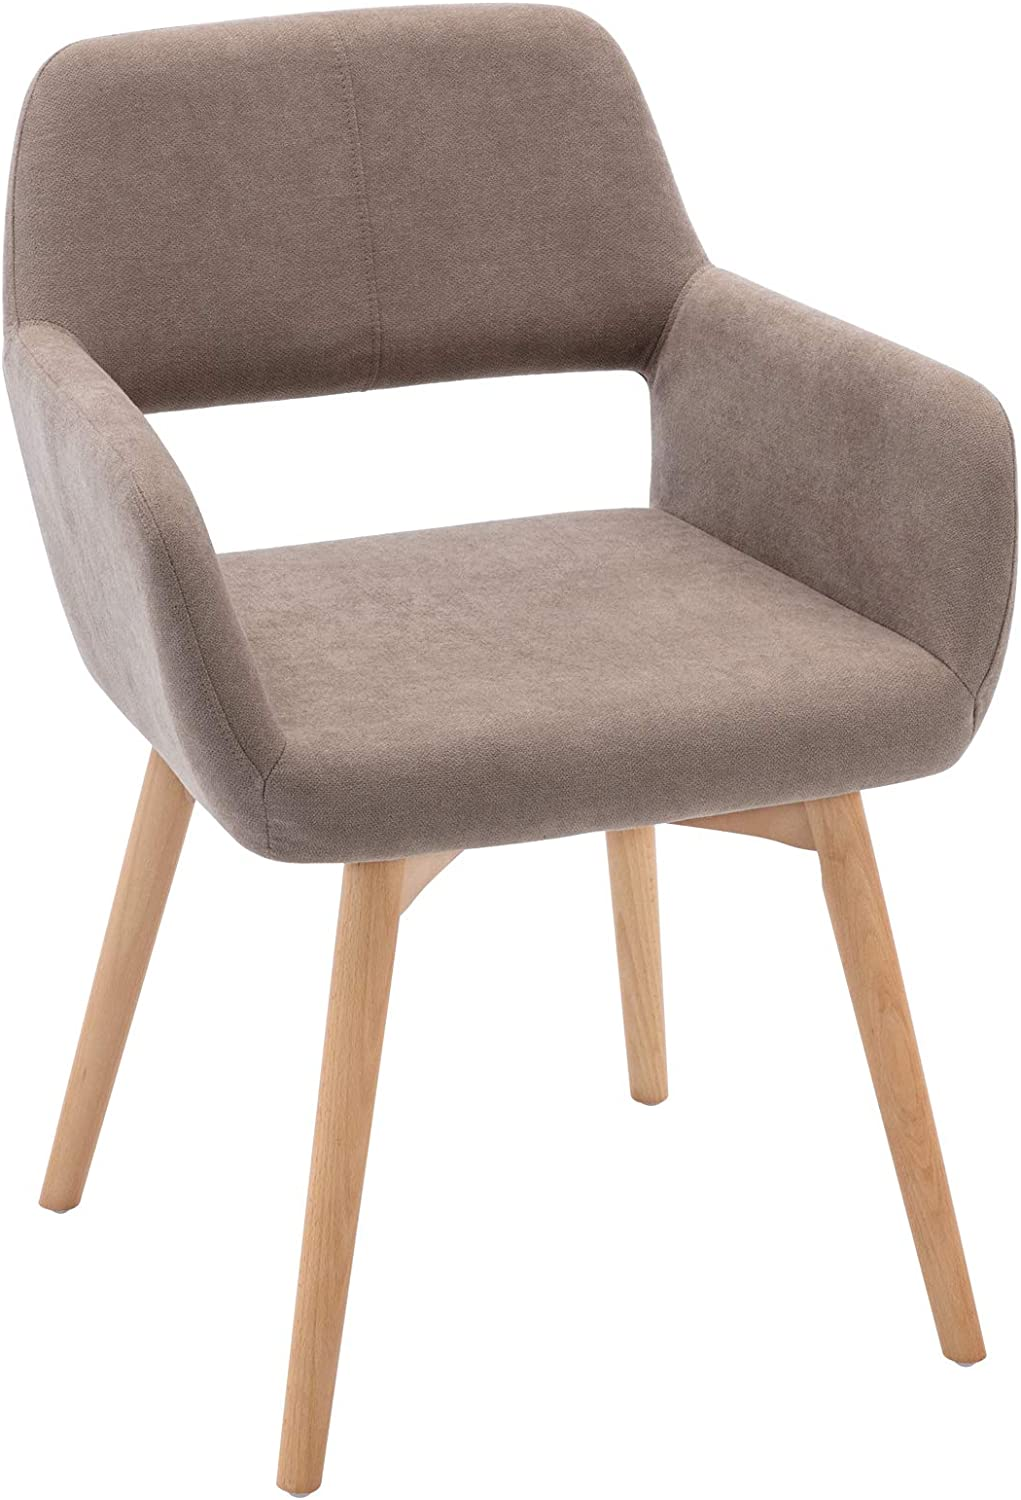 Lansen Furniture Modern Living Dining Room Accent Arm Chairs Club Guest with Solid Wood Legs (1, Light Brown)